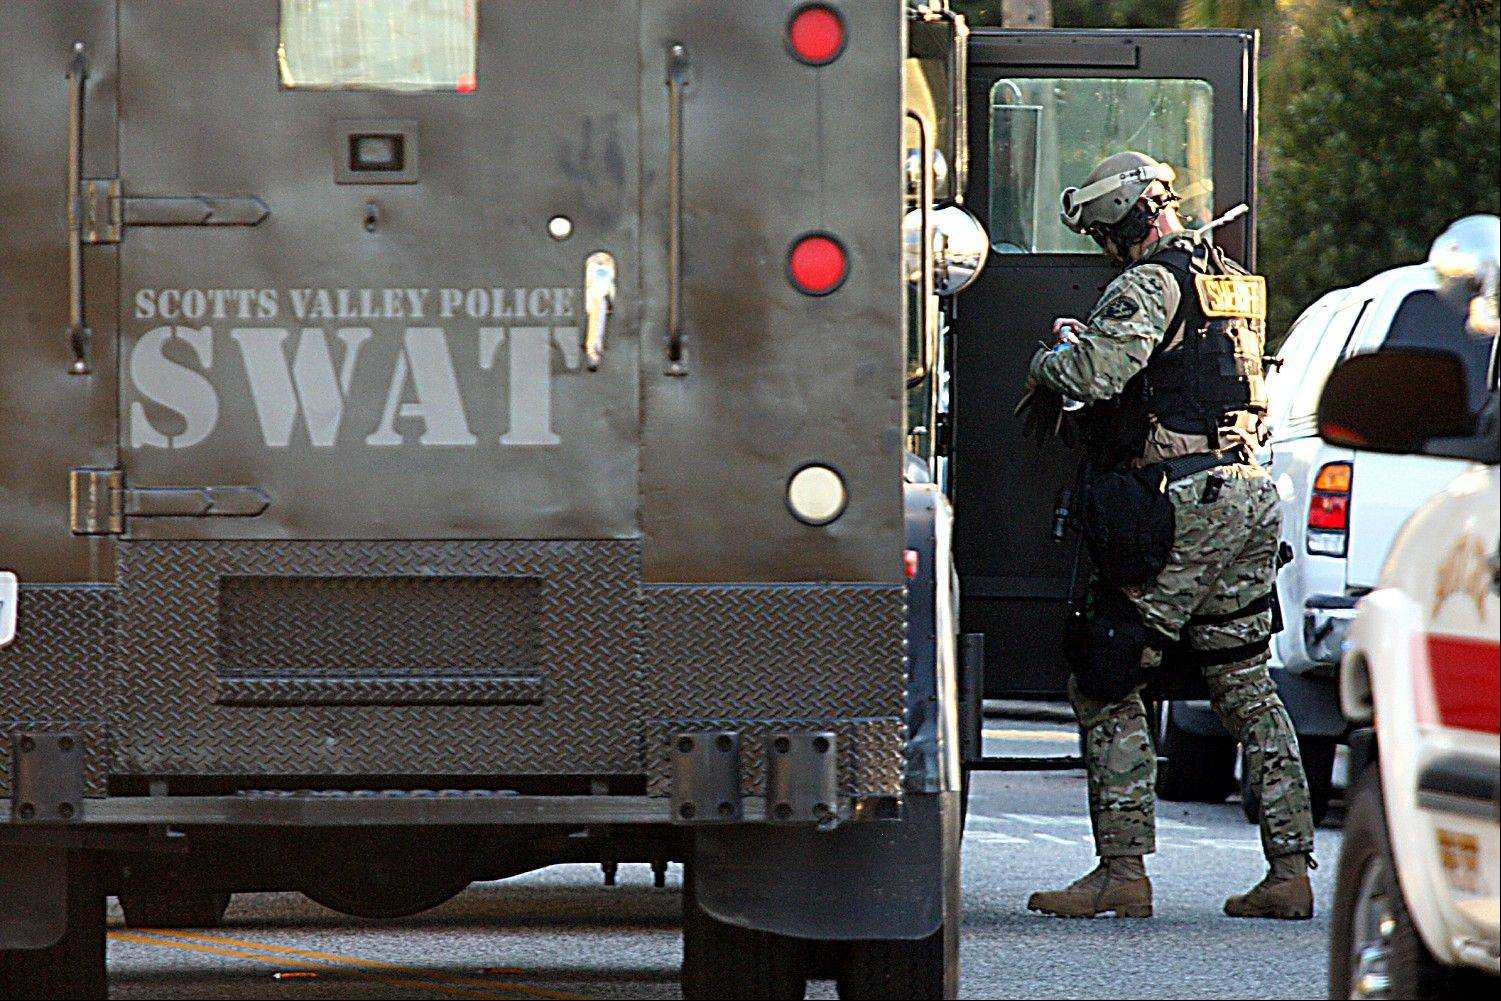 Santa Cruz County Sheriff�s Deputy member of the SWAT team gears up to enter the shooting scene Tuesday.